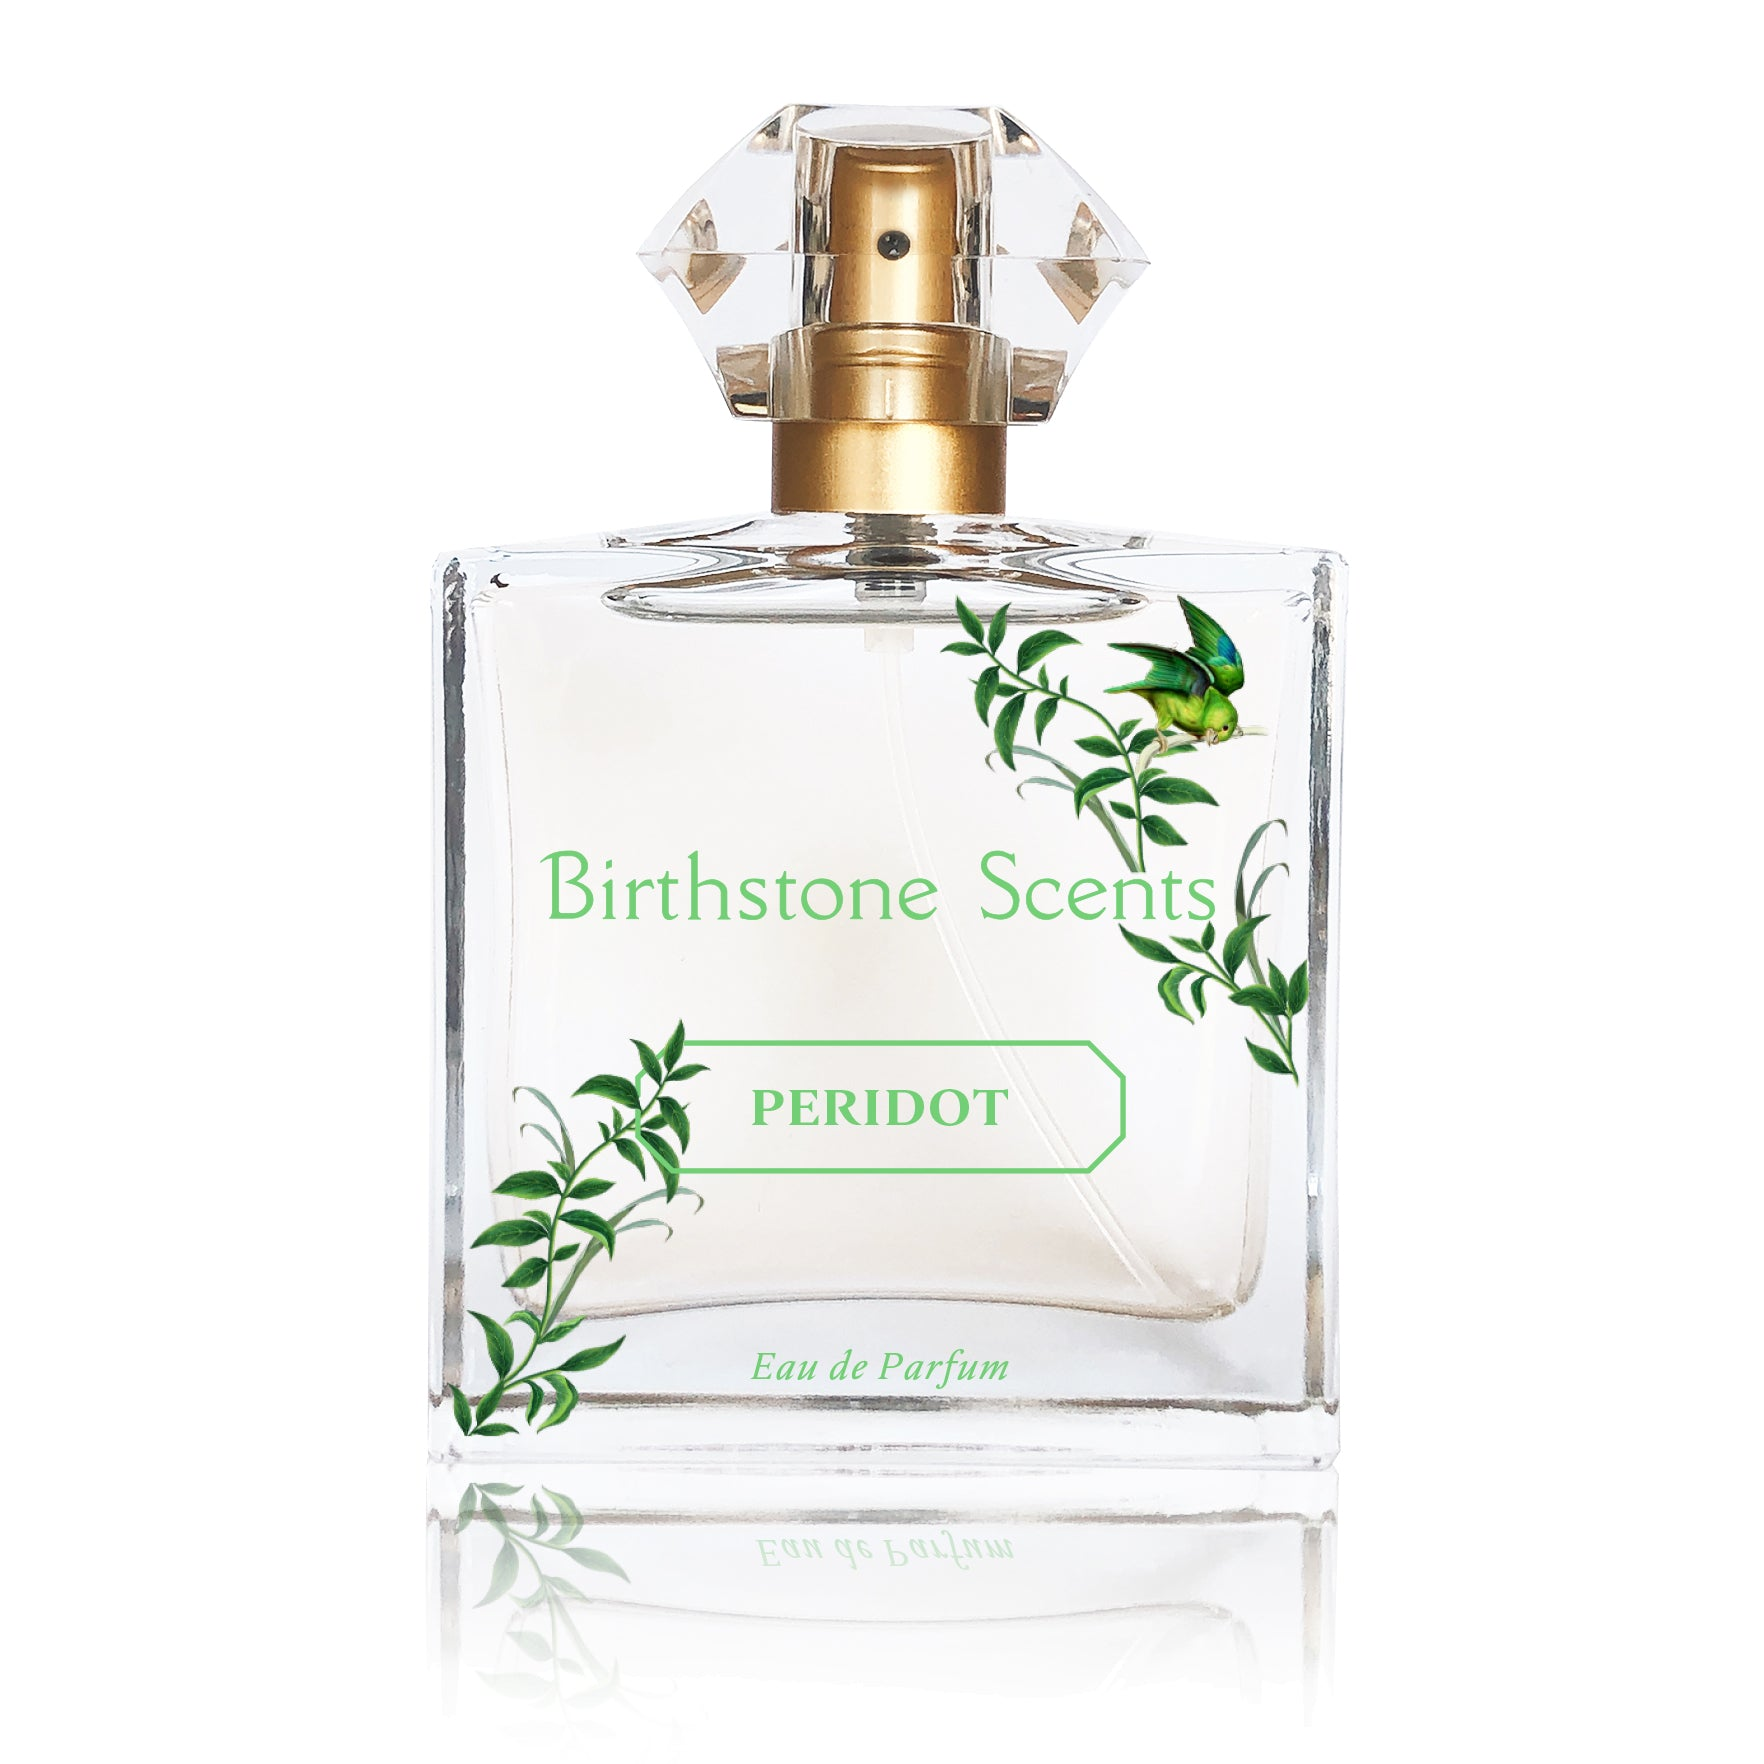 PERIDOT PERFUME WITH NECKLACE | August - Birthstone Scents